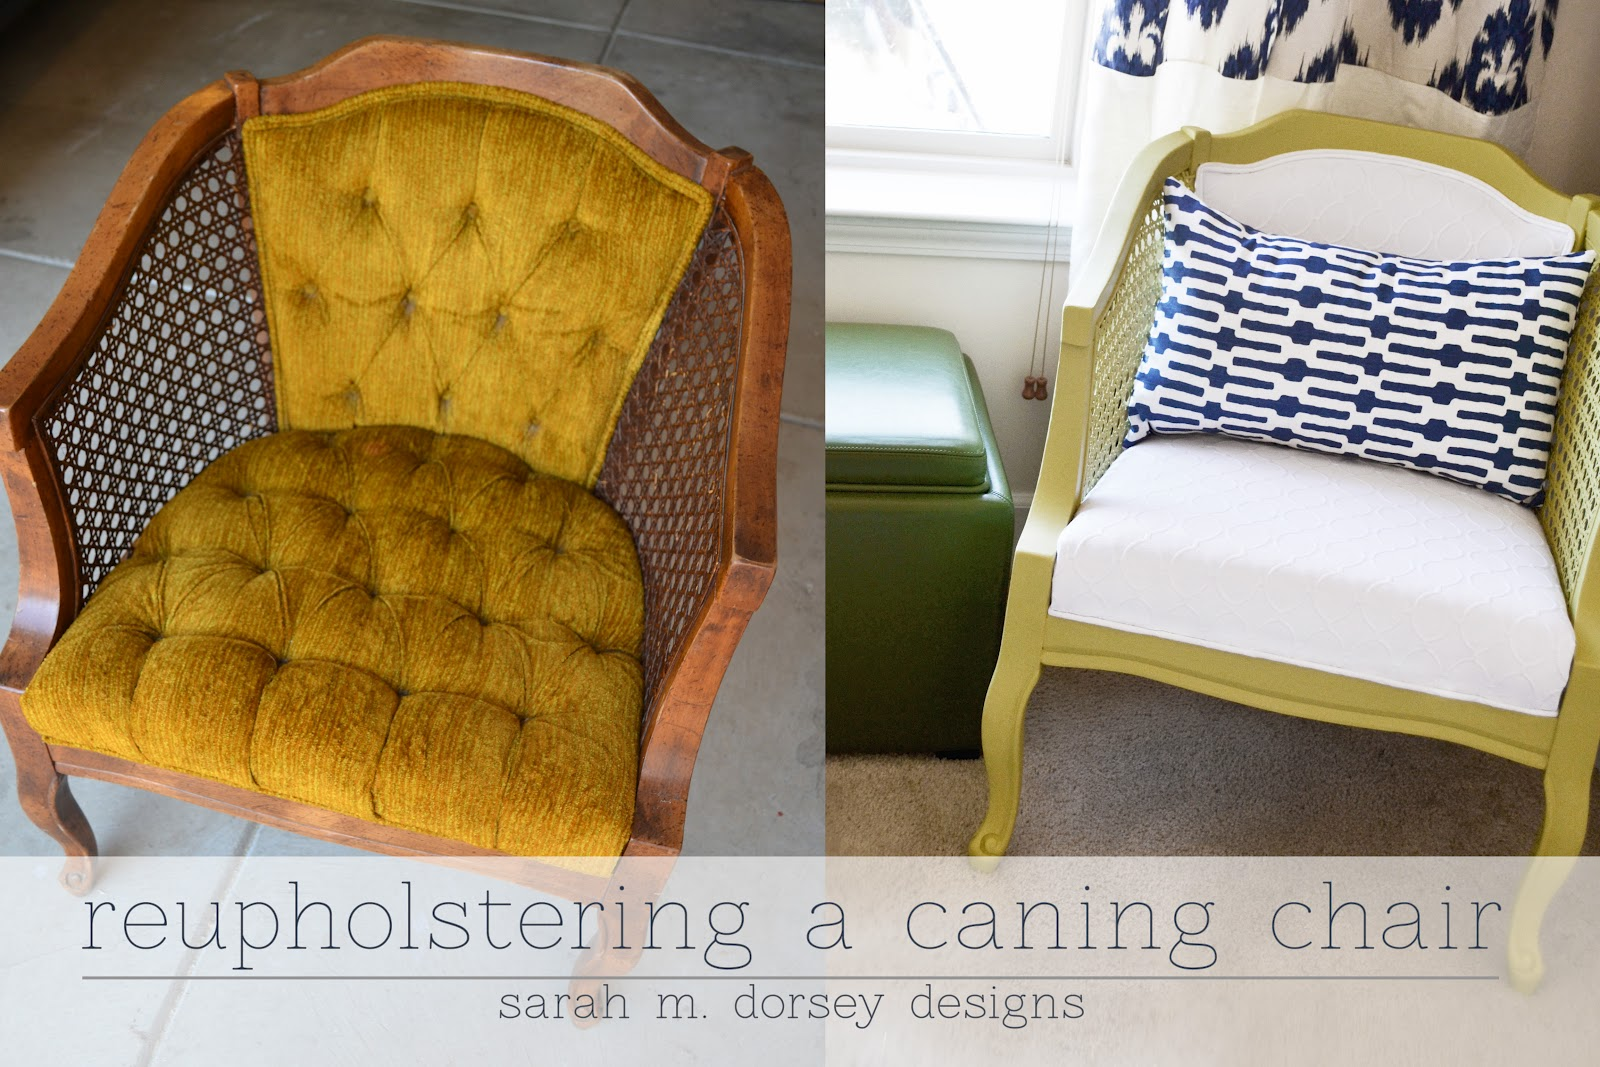 How To Replace Cane Back Chair With Fabric Folding For Shower Sarah M Dorsey Designs Chartreuse And White Caning